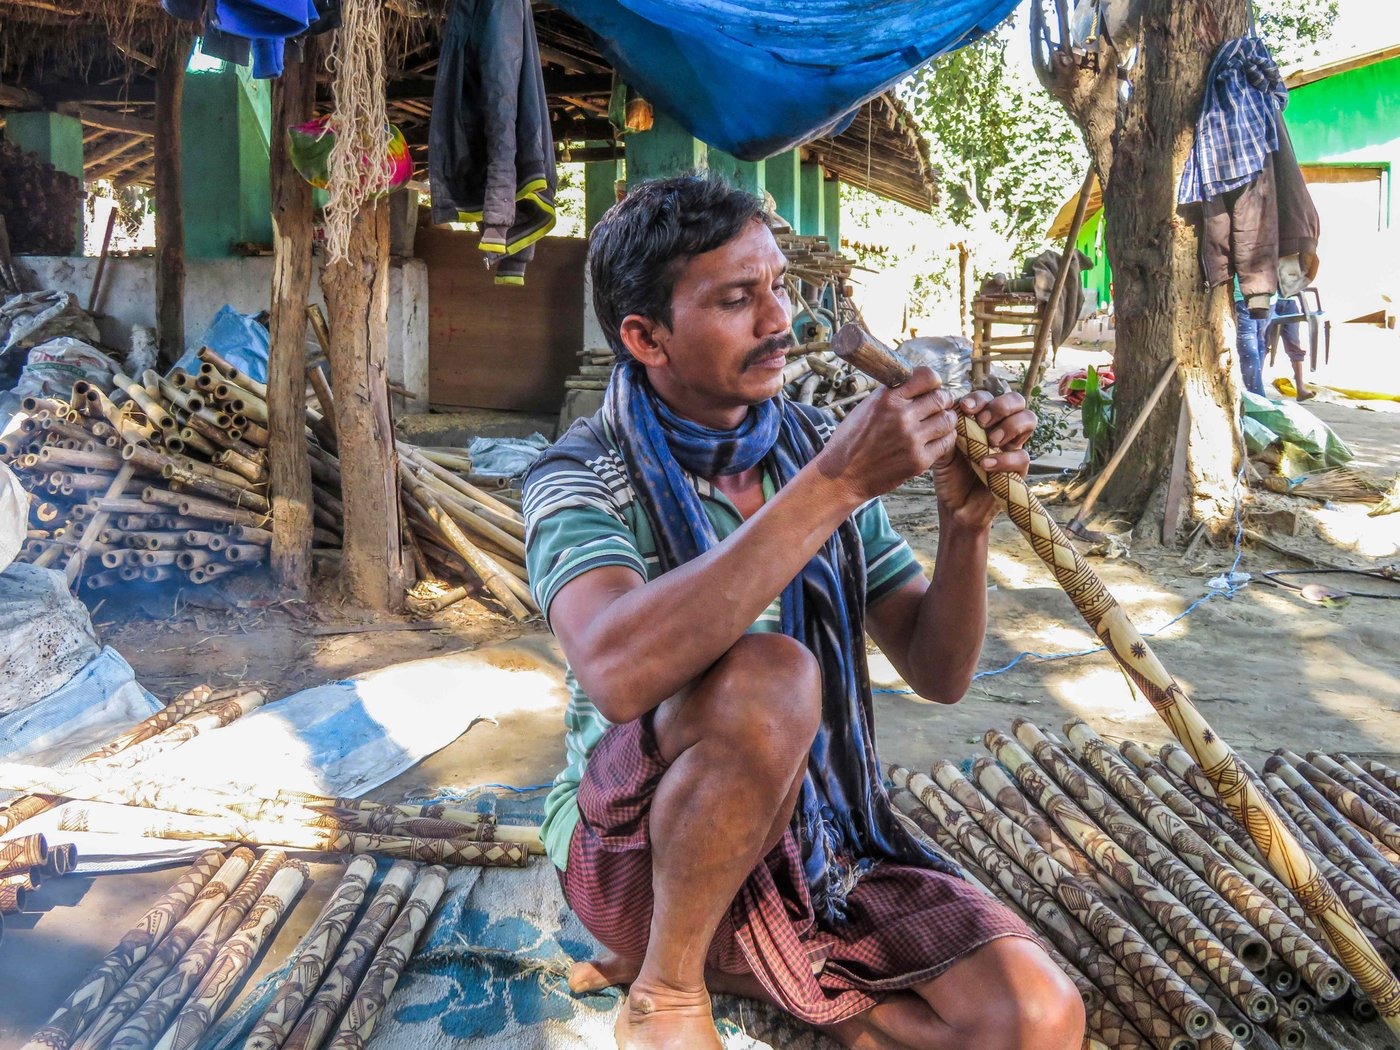 Maniram Mandawi, a flute-maker from the Gond Adivasi community in Chhatisgarh's Narayanpur district, recalls a time when forests were rich in animals, trees and bamboo for his signature 'swinging flute'